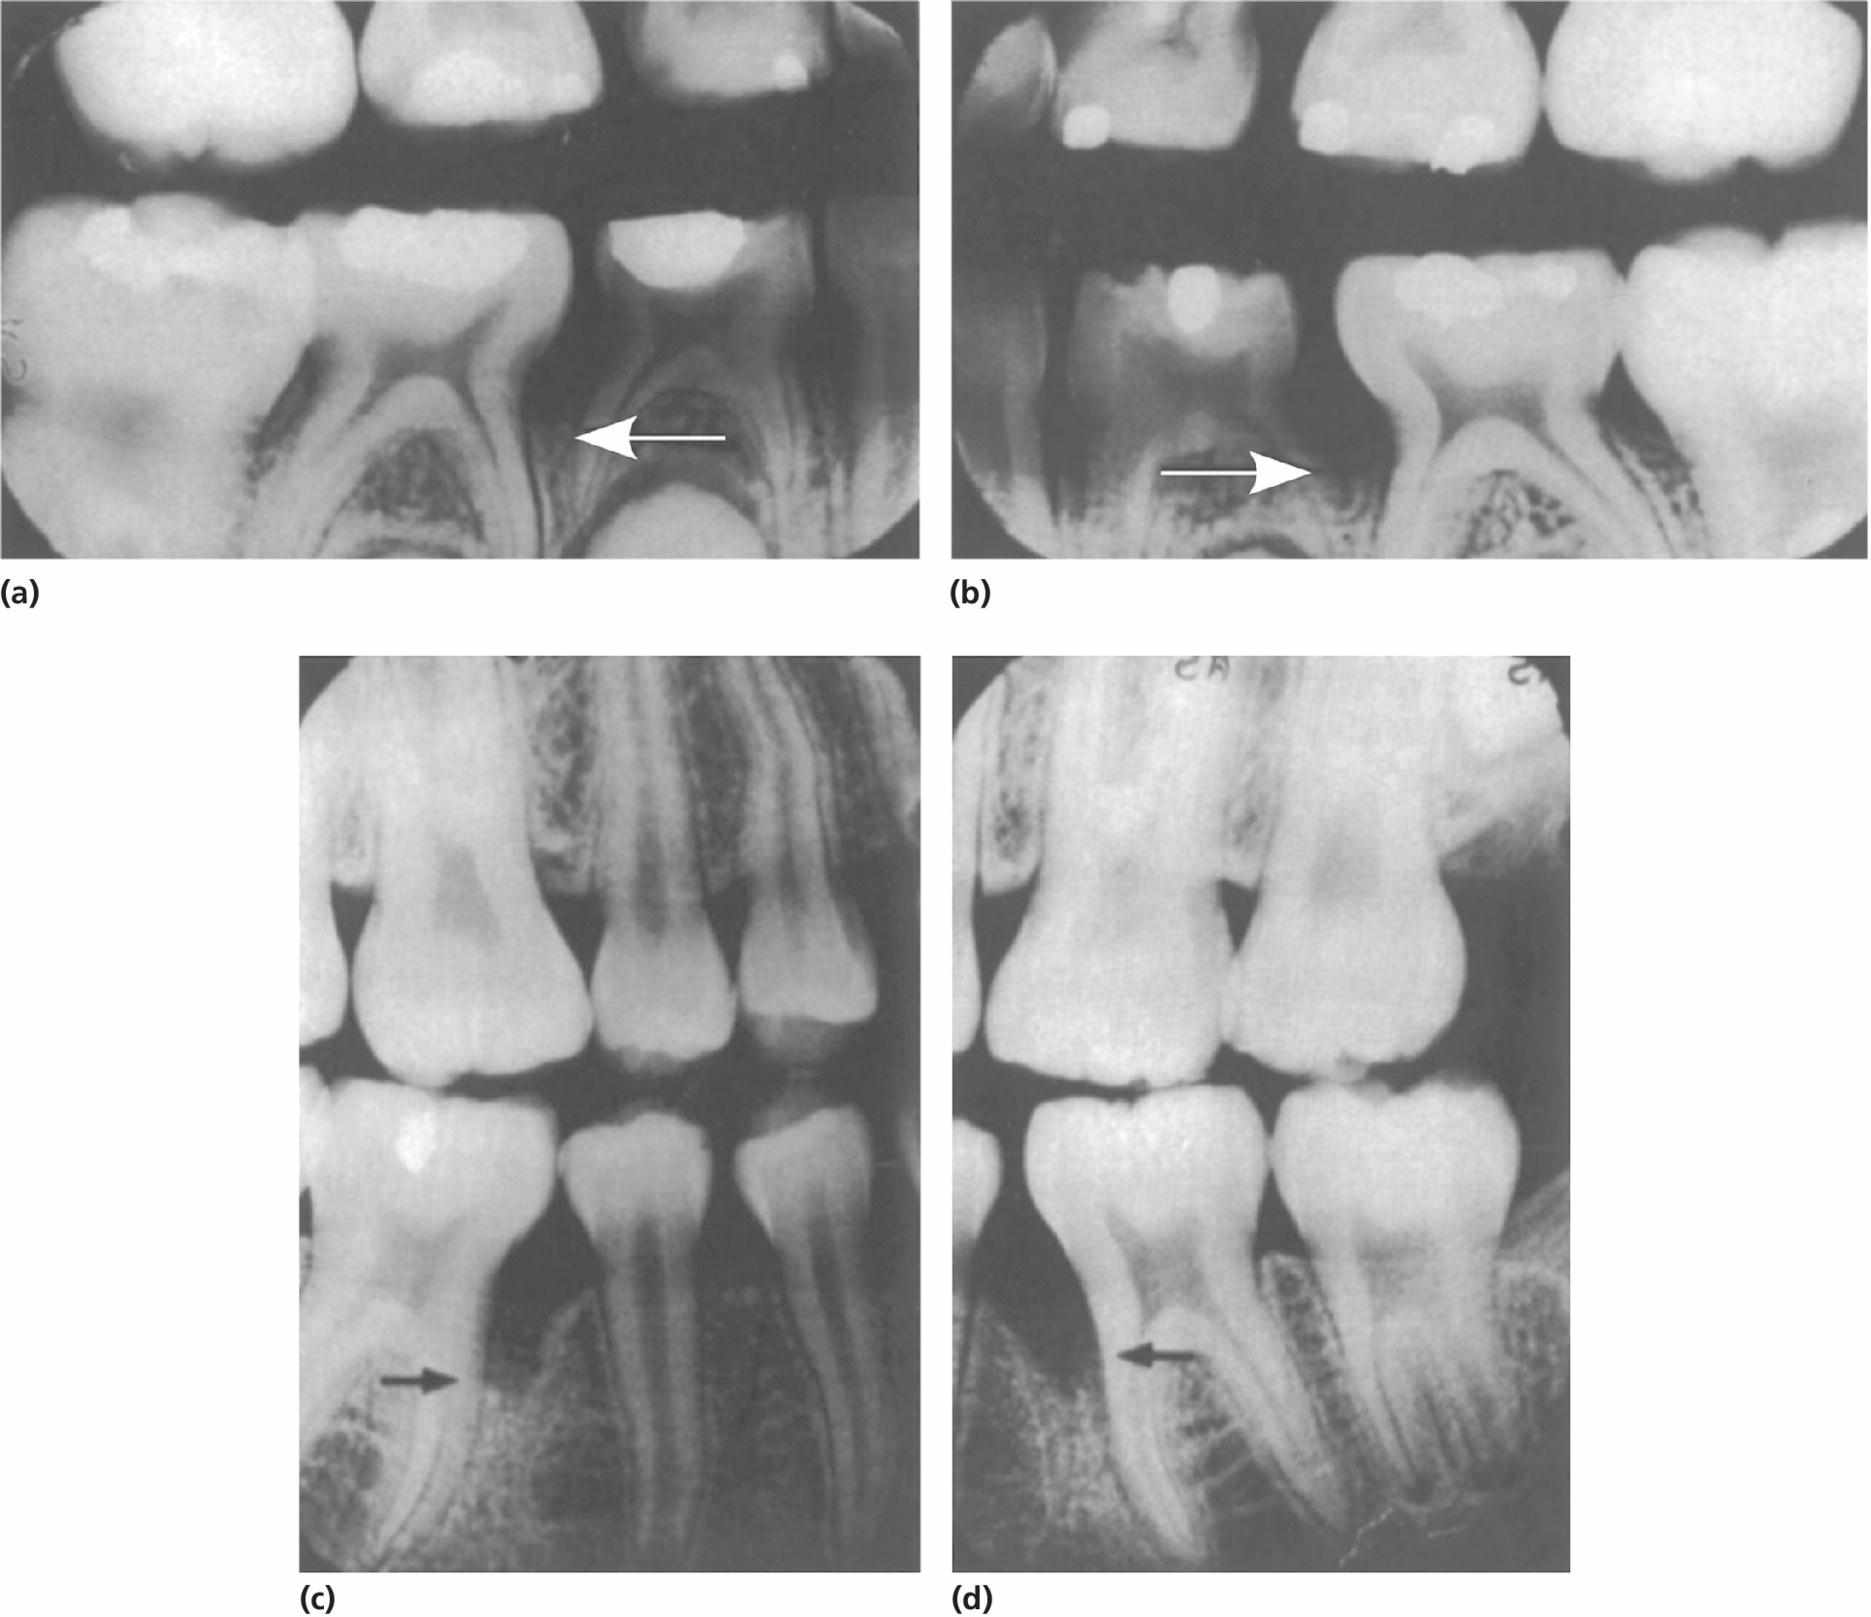 Dental radiographs of a 14-year-old boy presenting loss of bone support with arrows pointing the location (a, b) that developed into localized aggressive periodontitis (c,d).